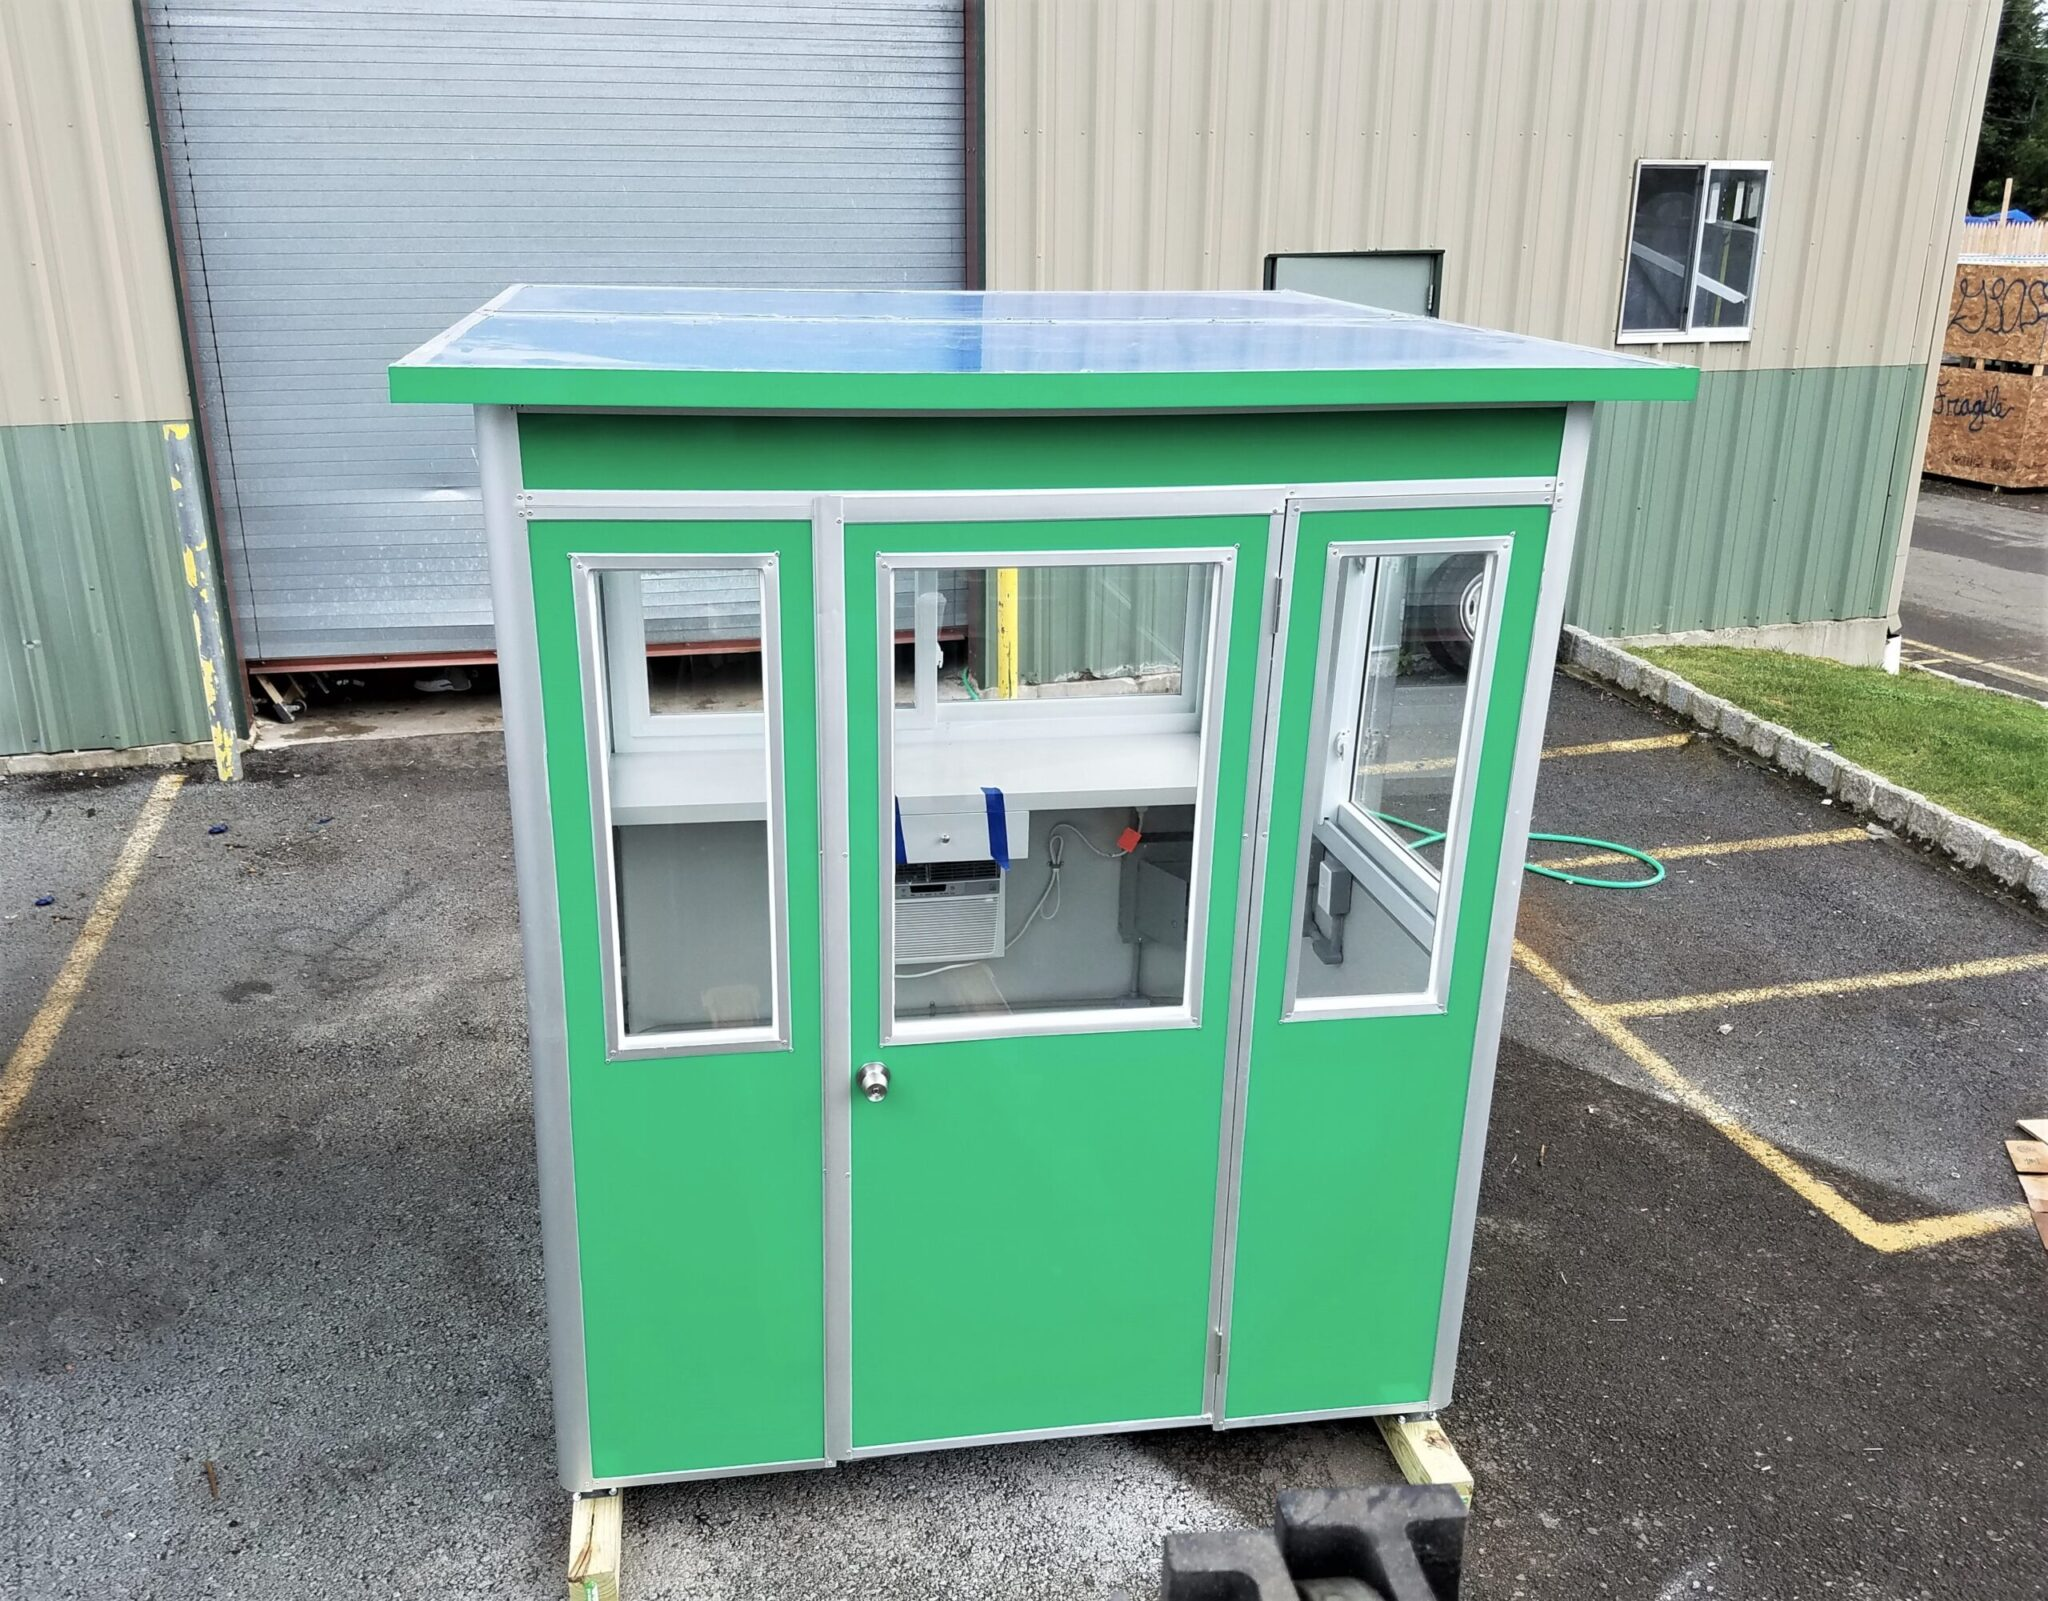 6x6 Hospital Security Booth in Charlotte, NC with Custom Exterior Vinyl Wrap and Desk with Drawer